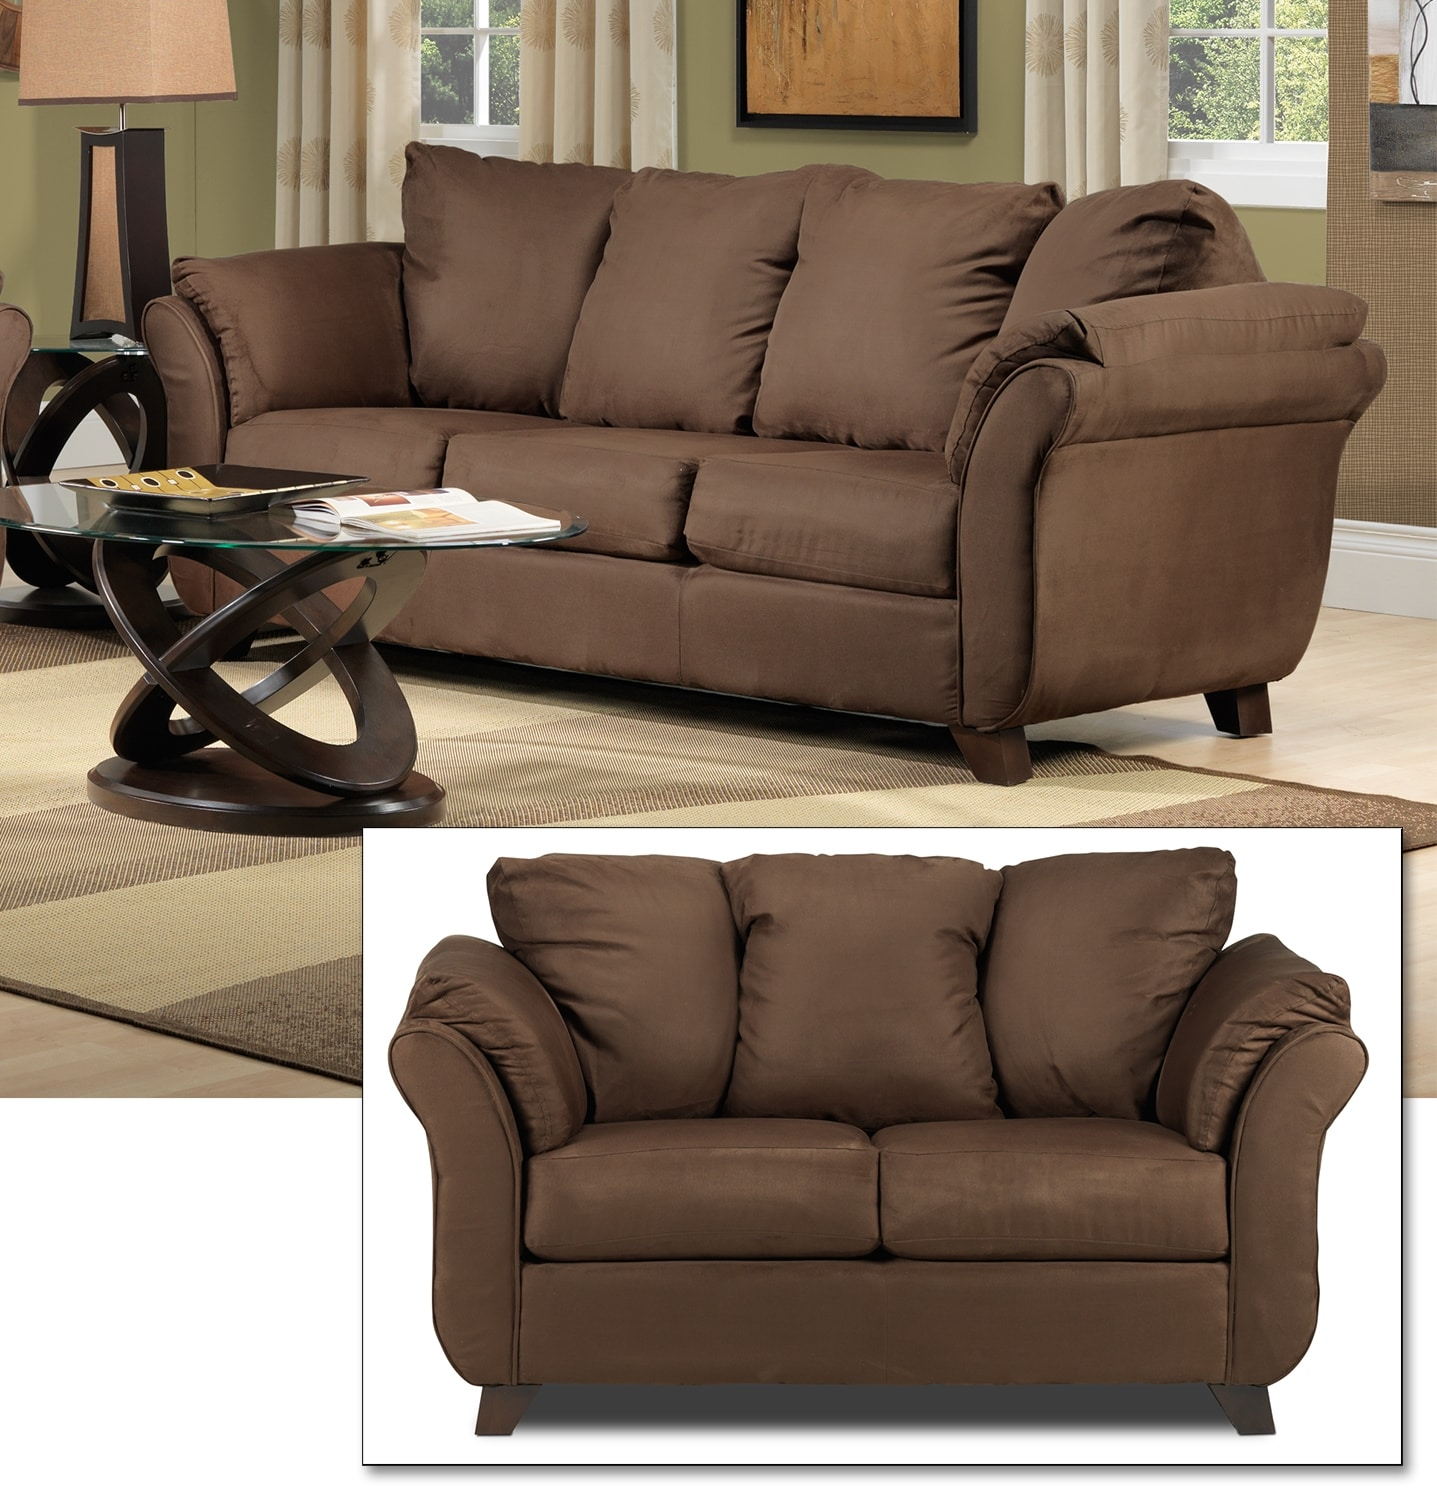 Leon S Furniture Sectional Sofas: Collier Sofa - Chocolate